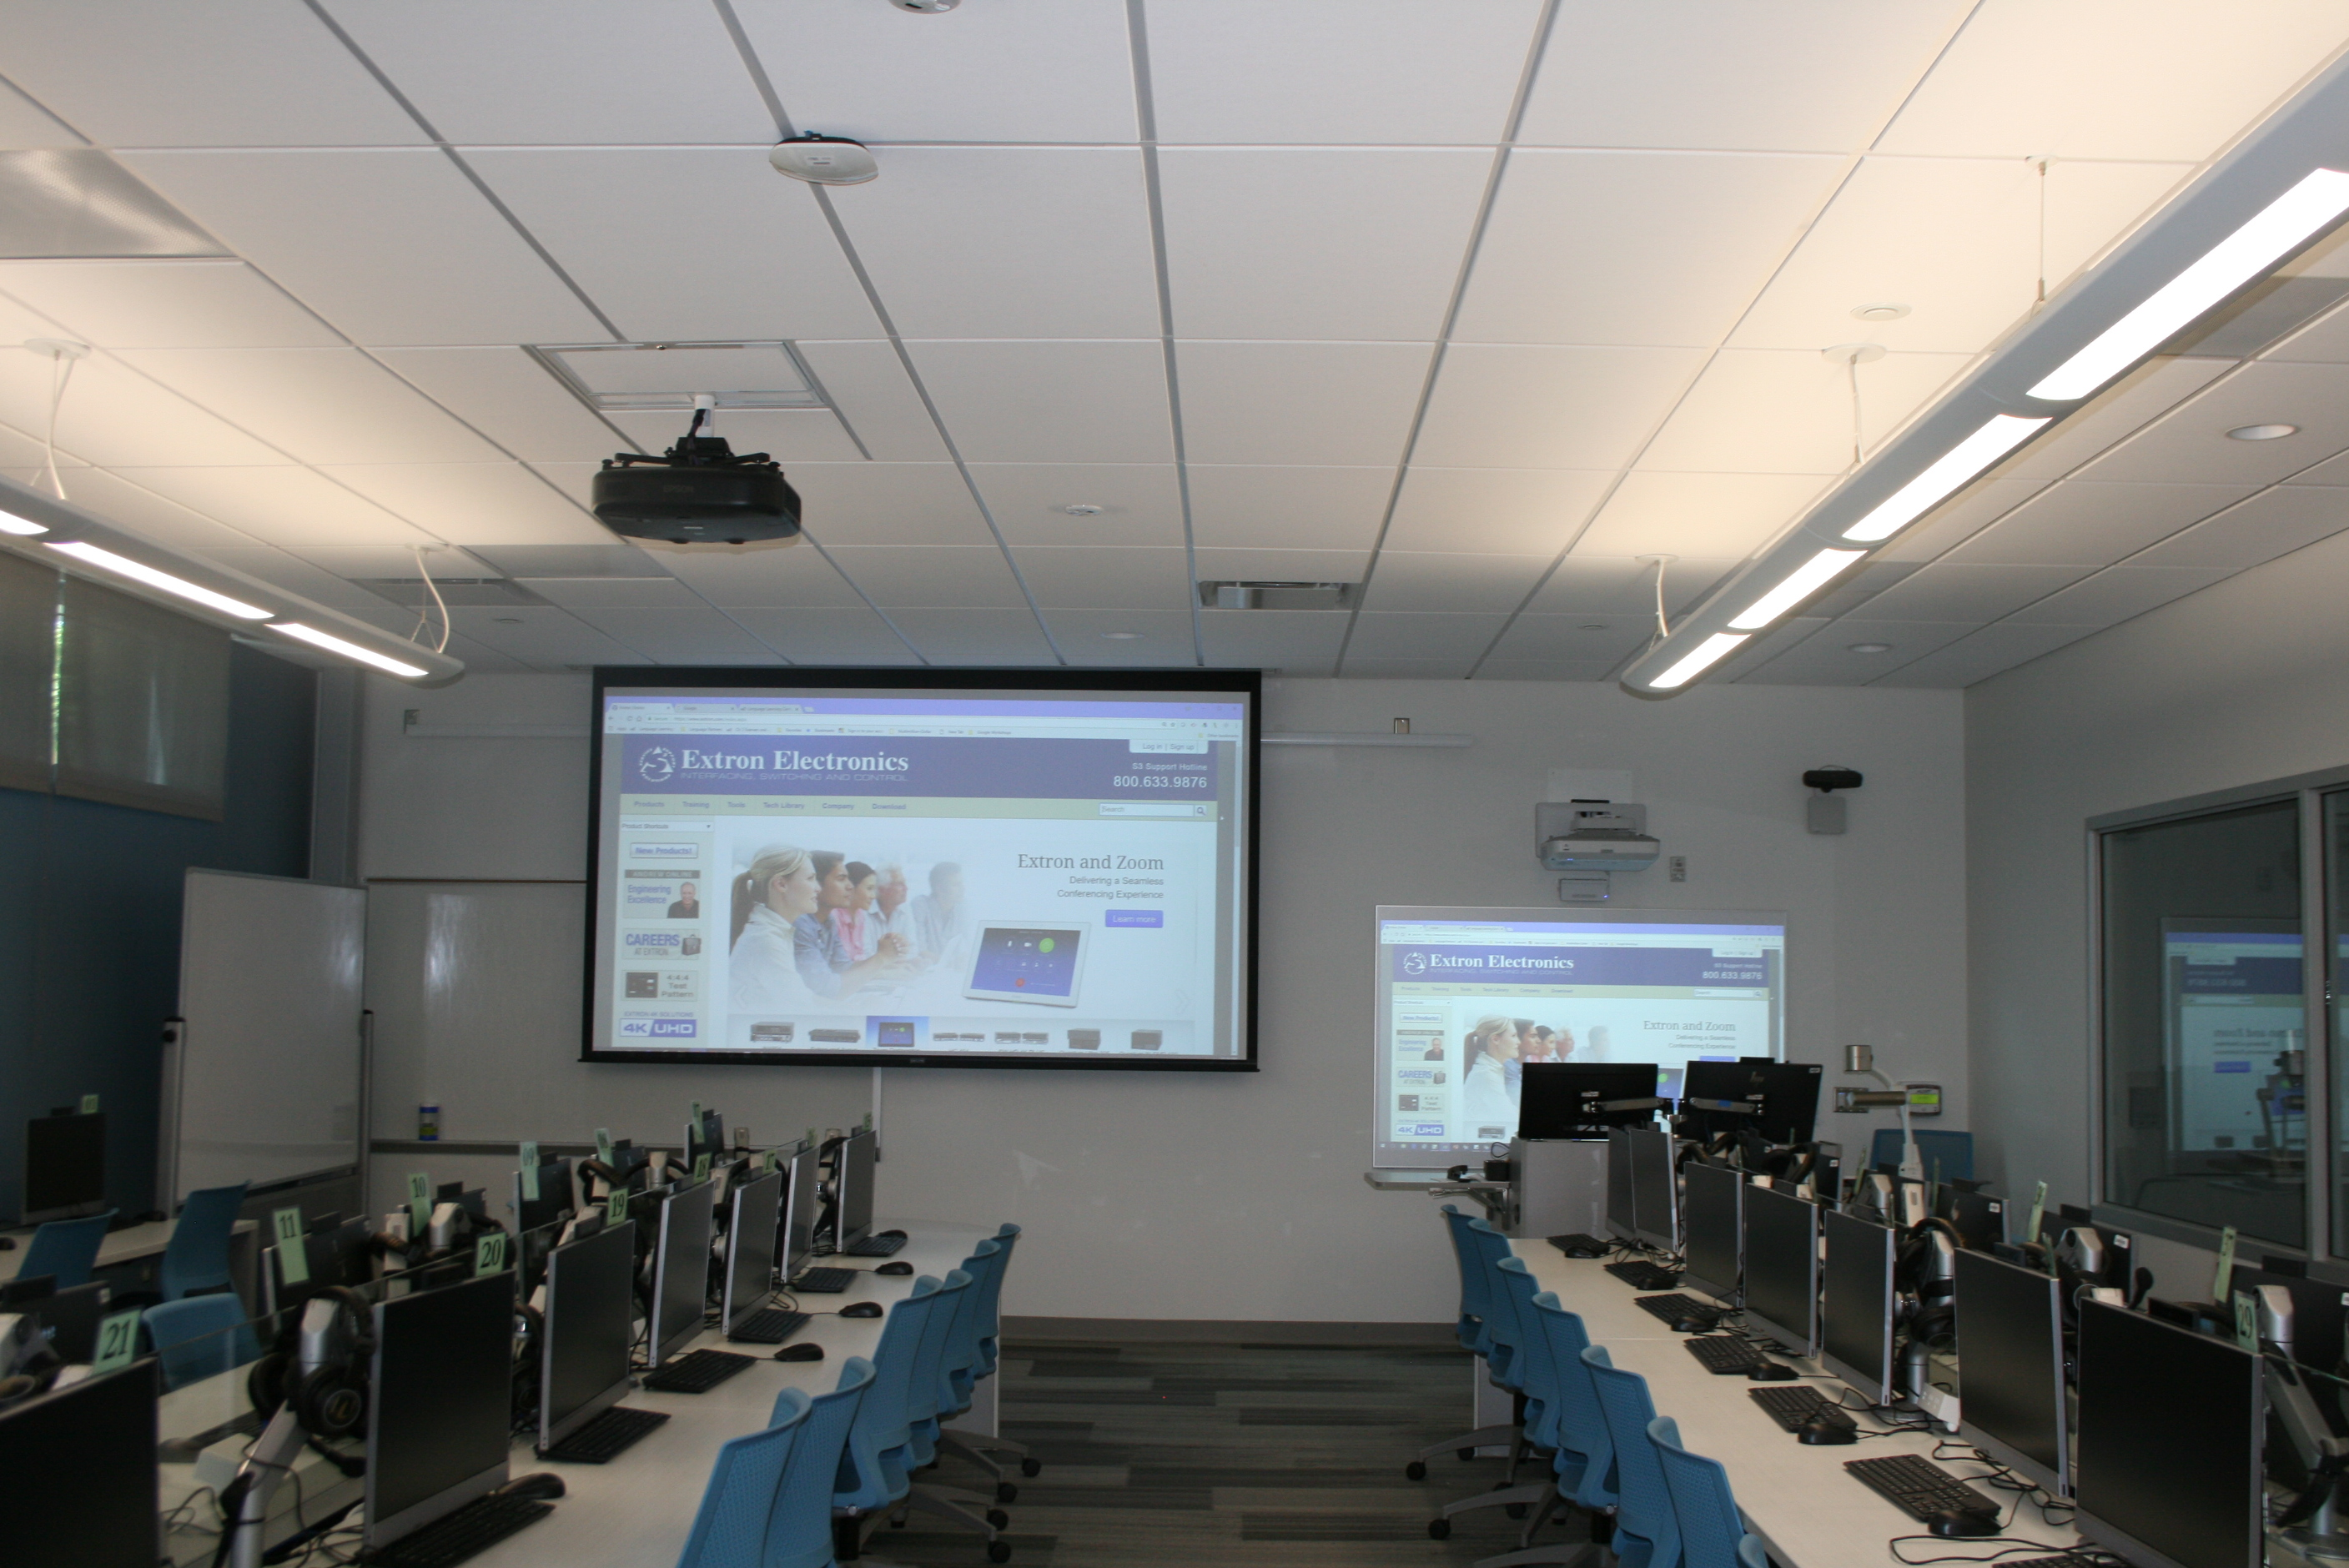 A press on the TouchLink Pro touchpanel's capacitive touchscreen lowers a projection screen in front of or to the side of the whiteboard, depending on room layout.